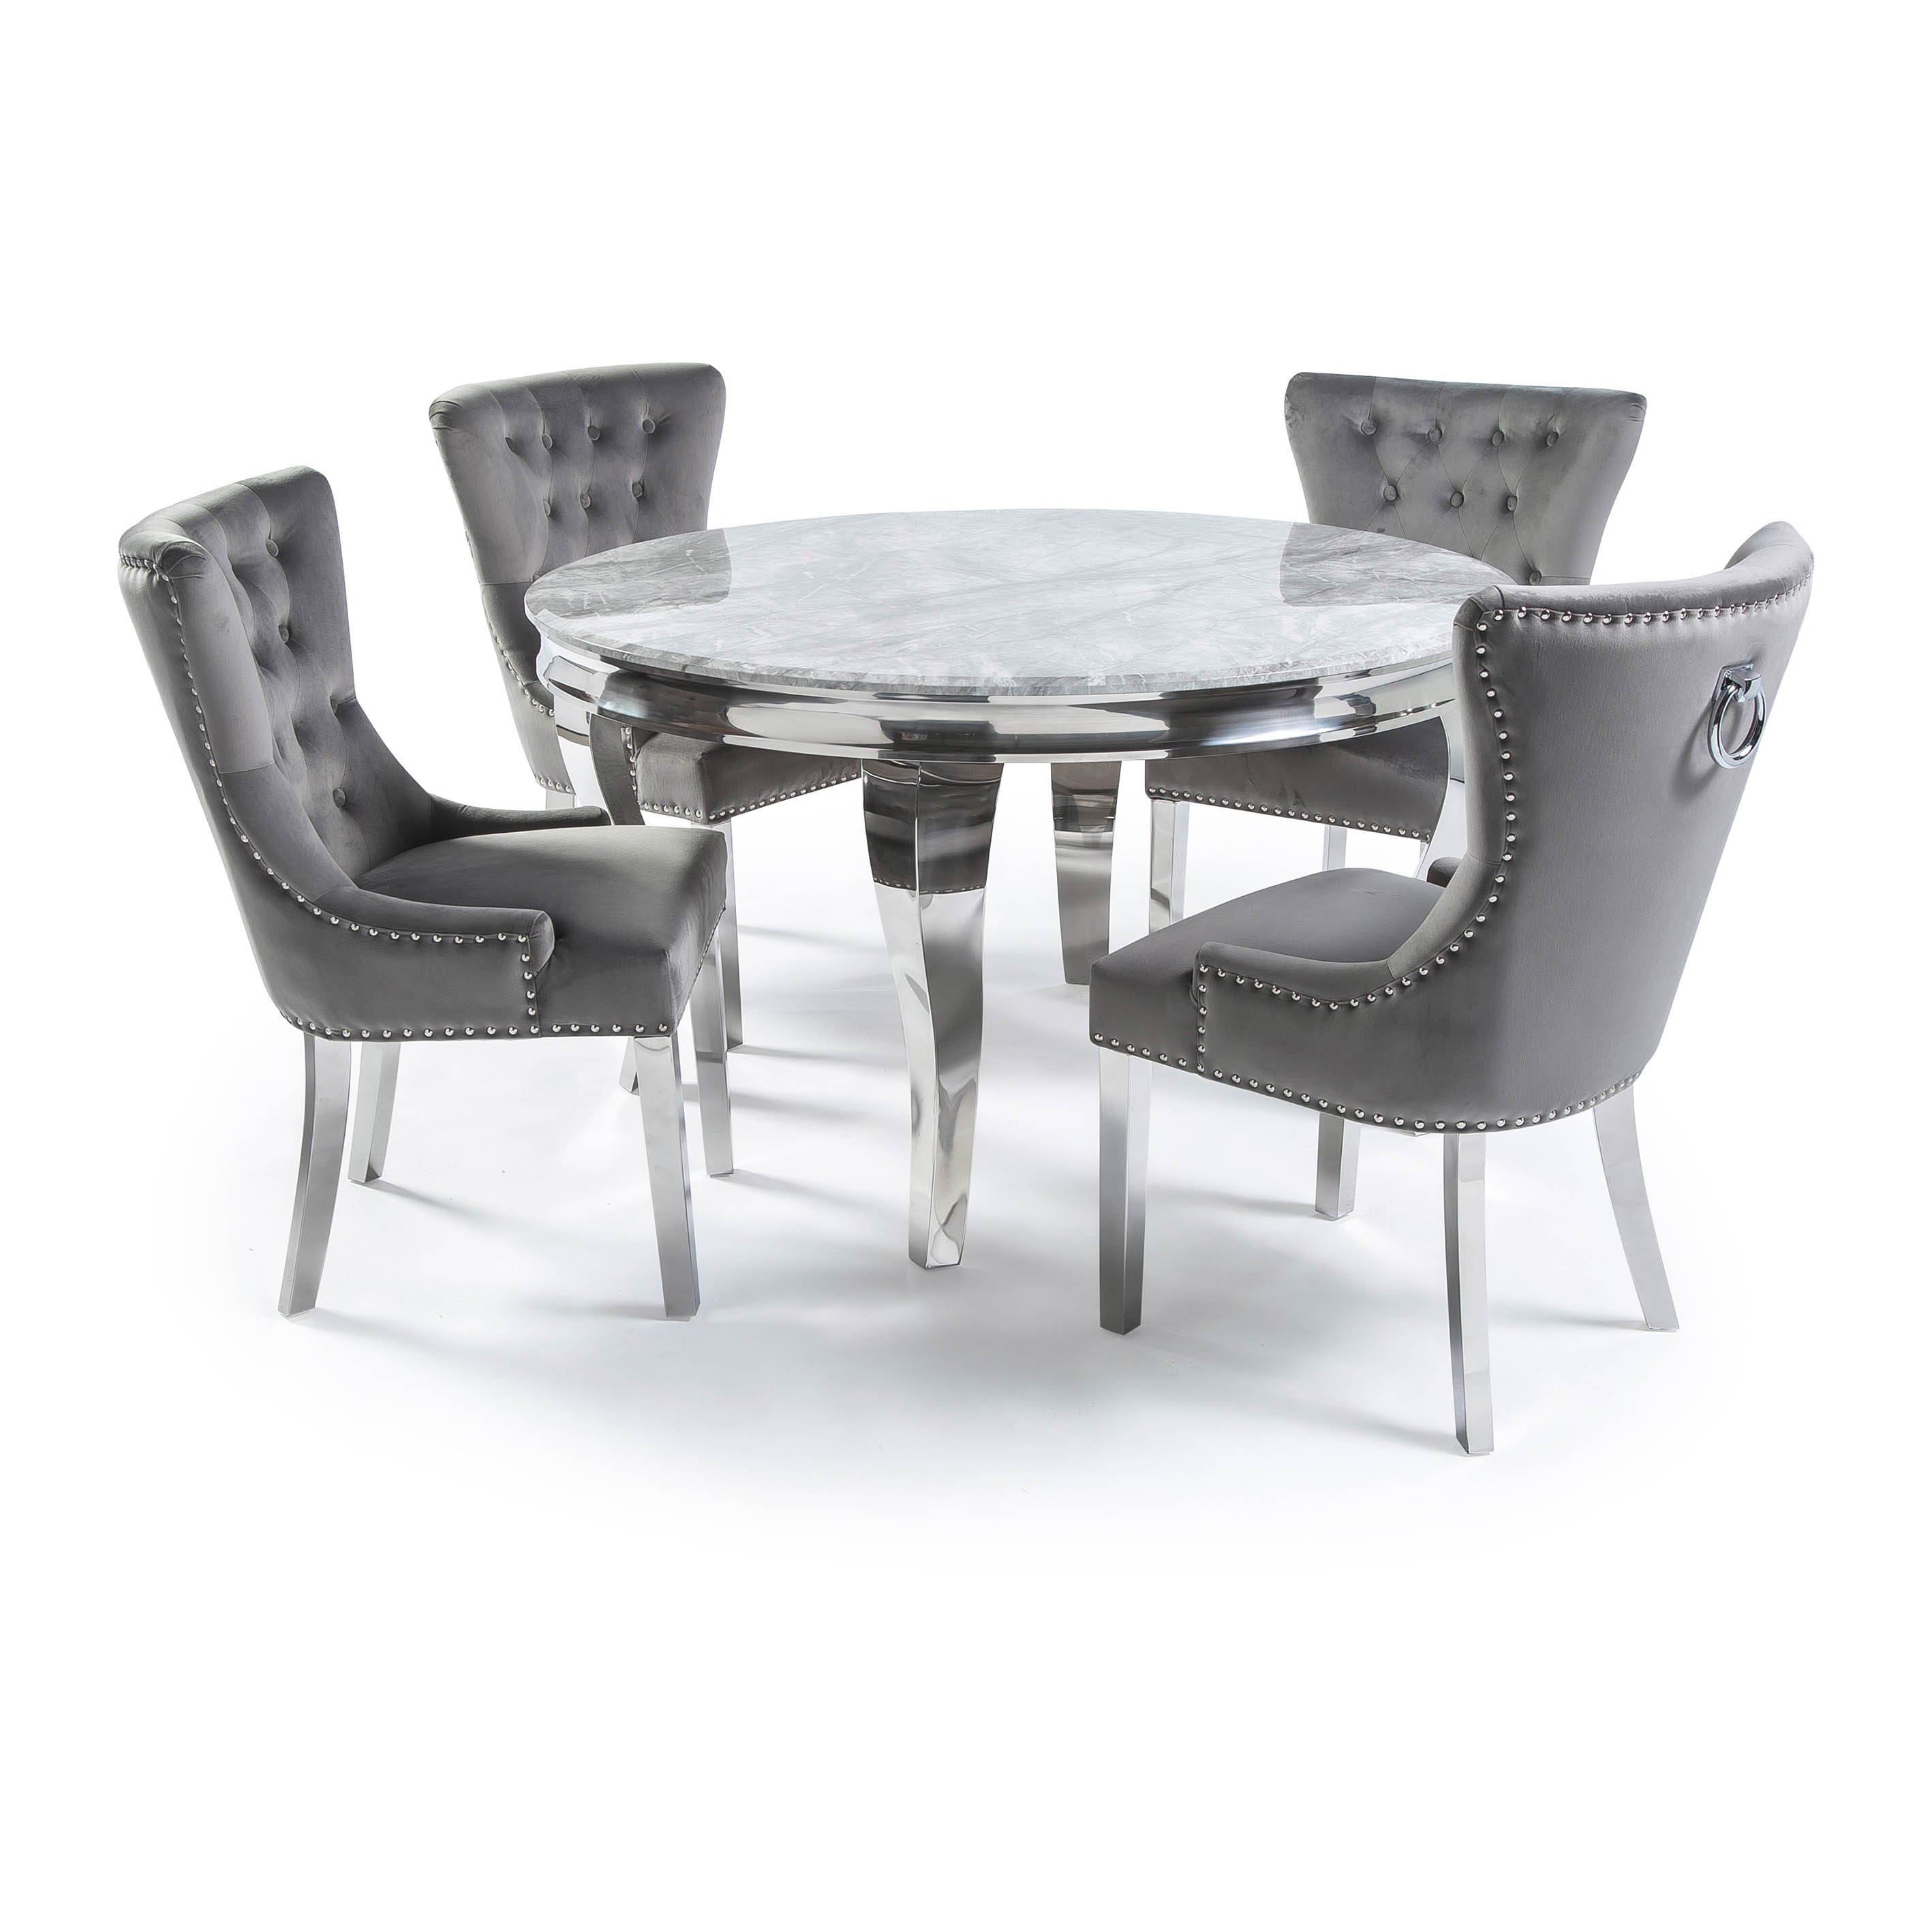 Image of: 1 3m Circular Polished Steel Marble Dining Table And Chairs Set Grosvenor Furniture